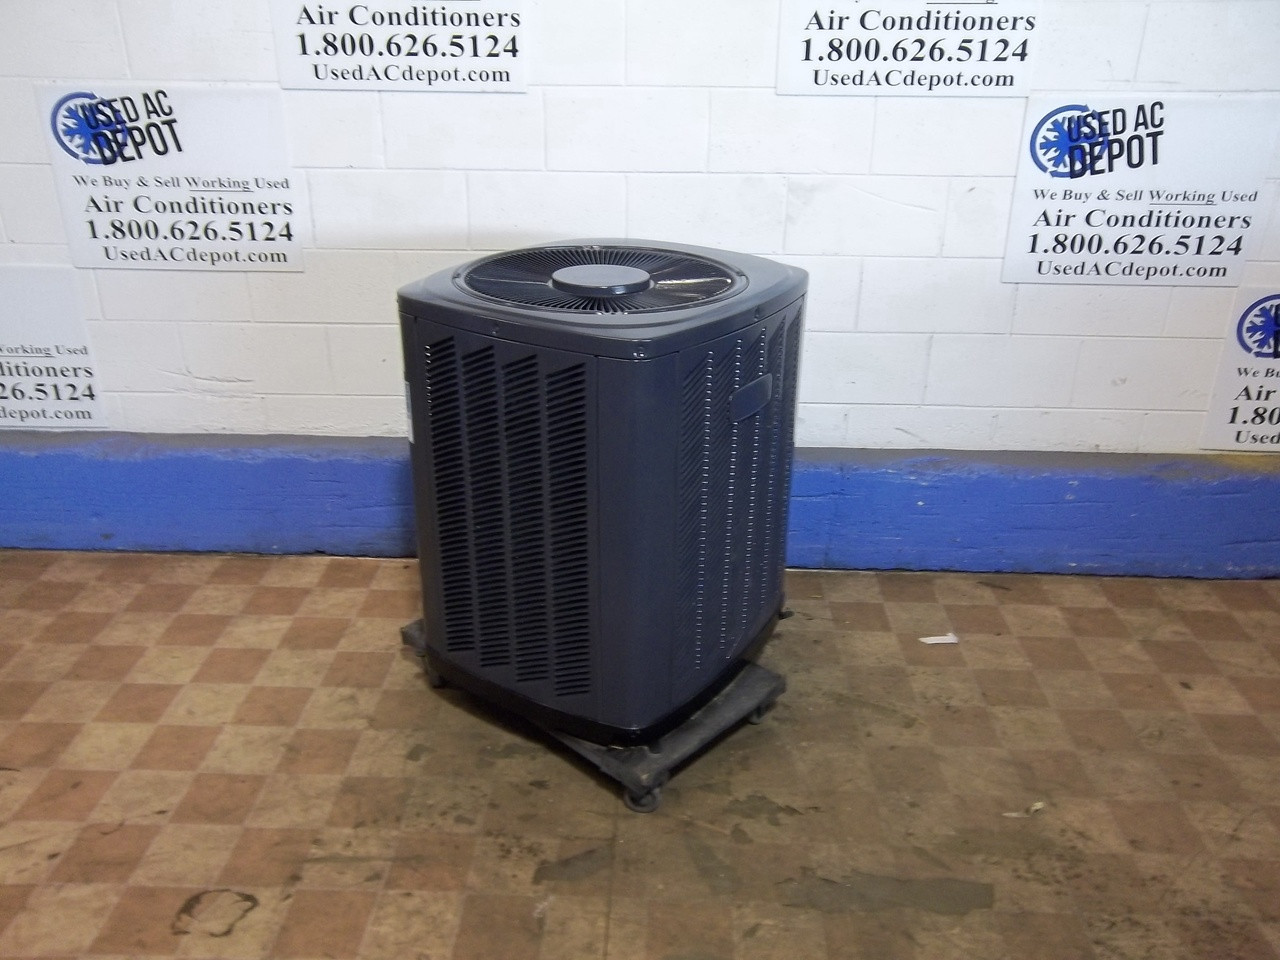 AMERICAN STANDARD Used Central Air Conditioner Condenser 2A7B3024A1000AA  ACC-7653